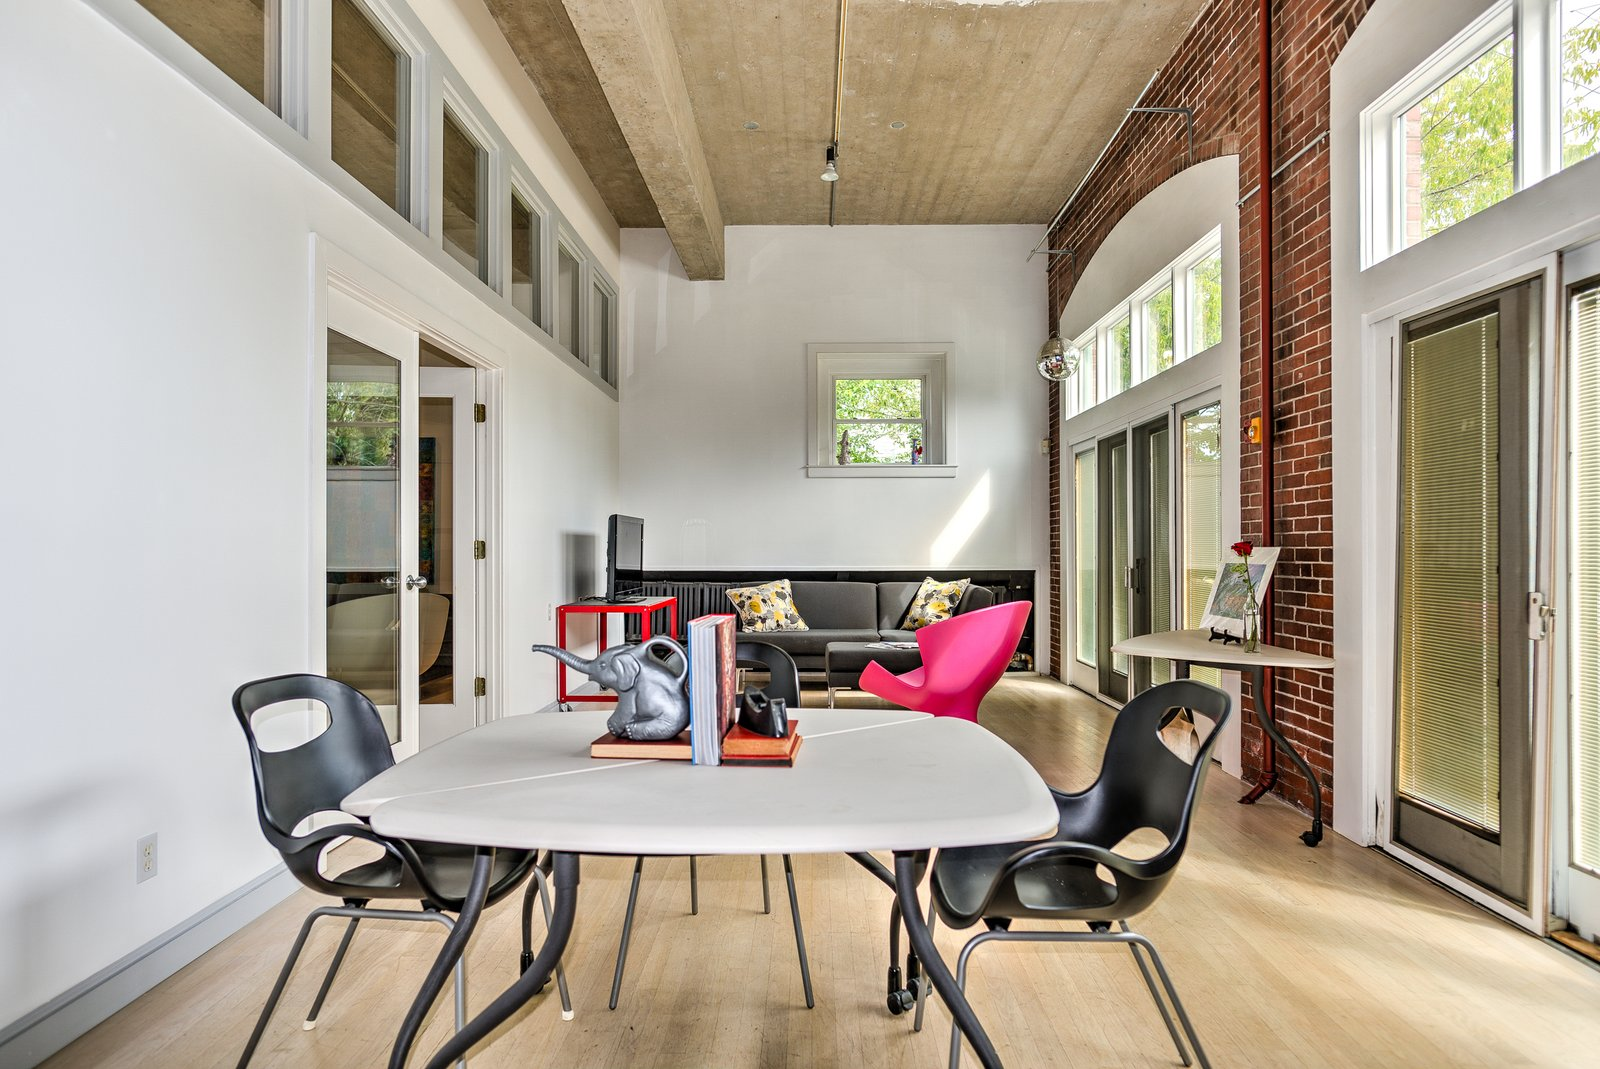 Towards the front of the house, where the original garage doors have been replaced by French doors and transom windows, is a multifunctional space with brick walls that currently functions as an office.